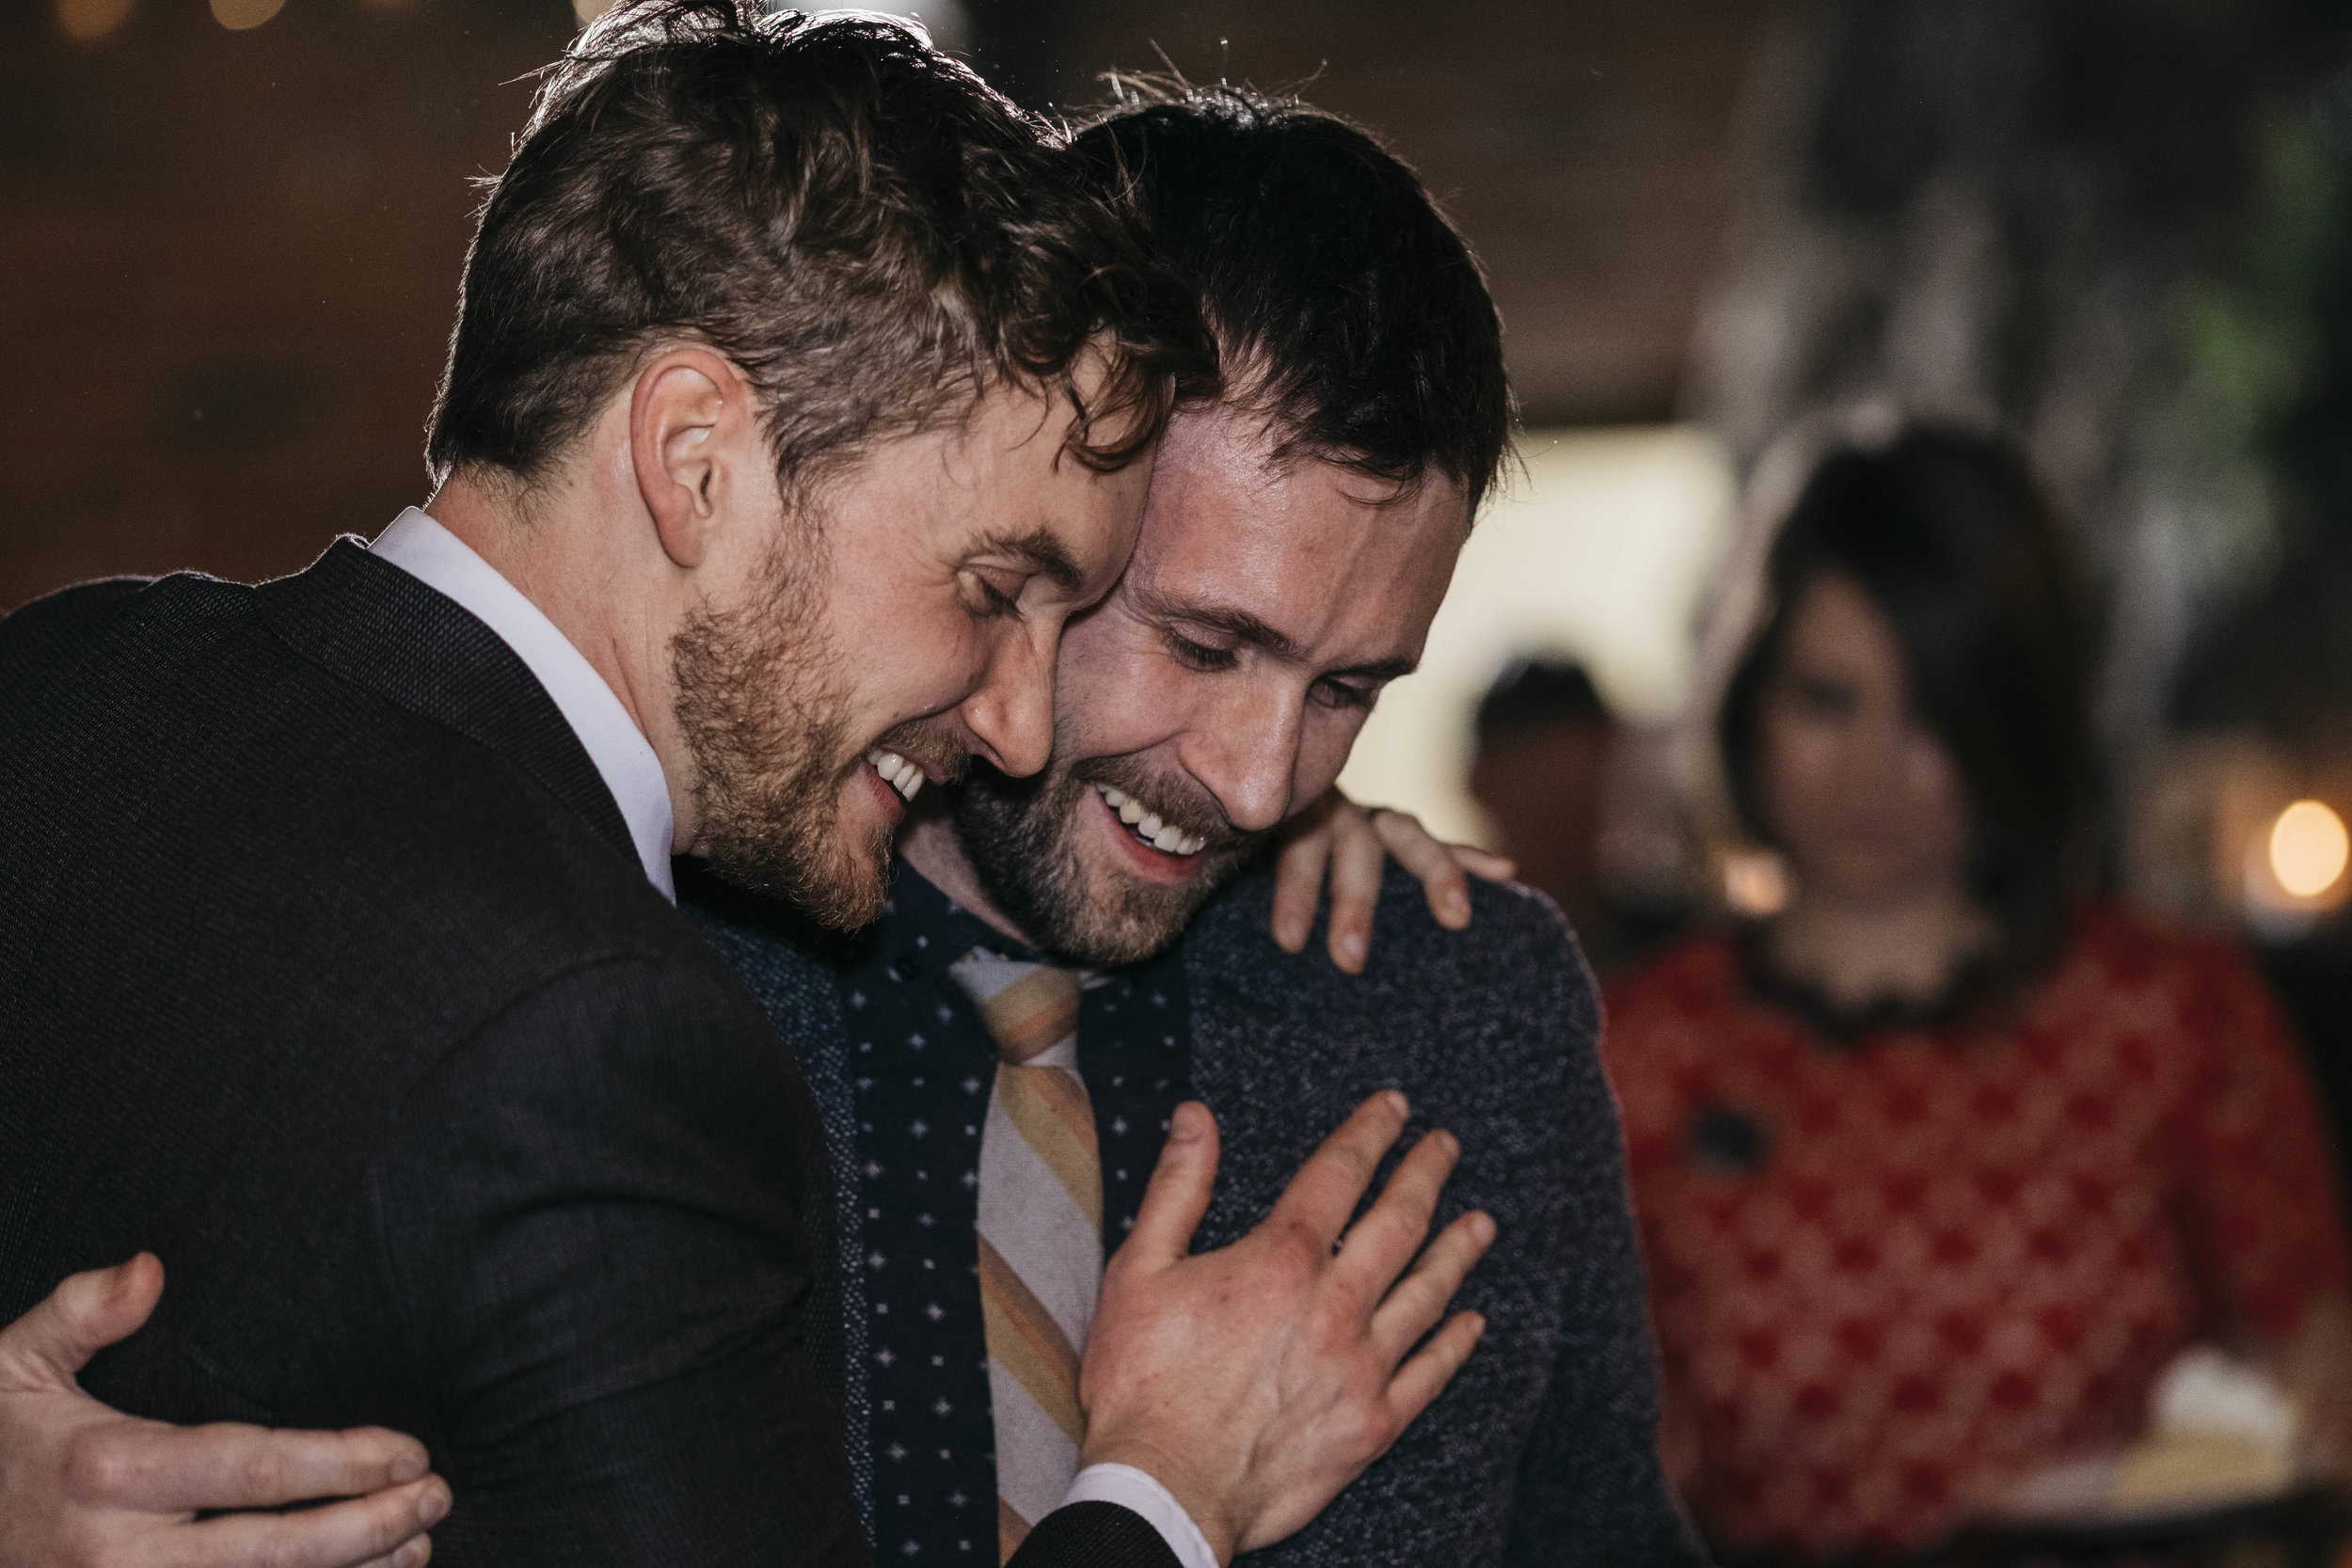 Groom laughs with friend during speeches at his wedding reception.